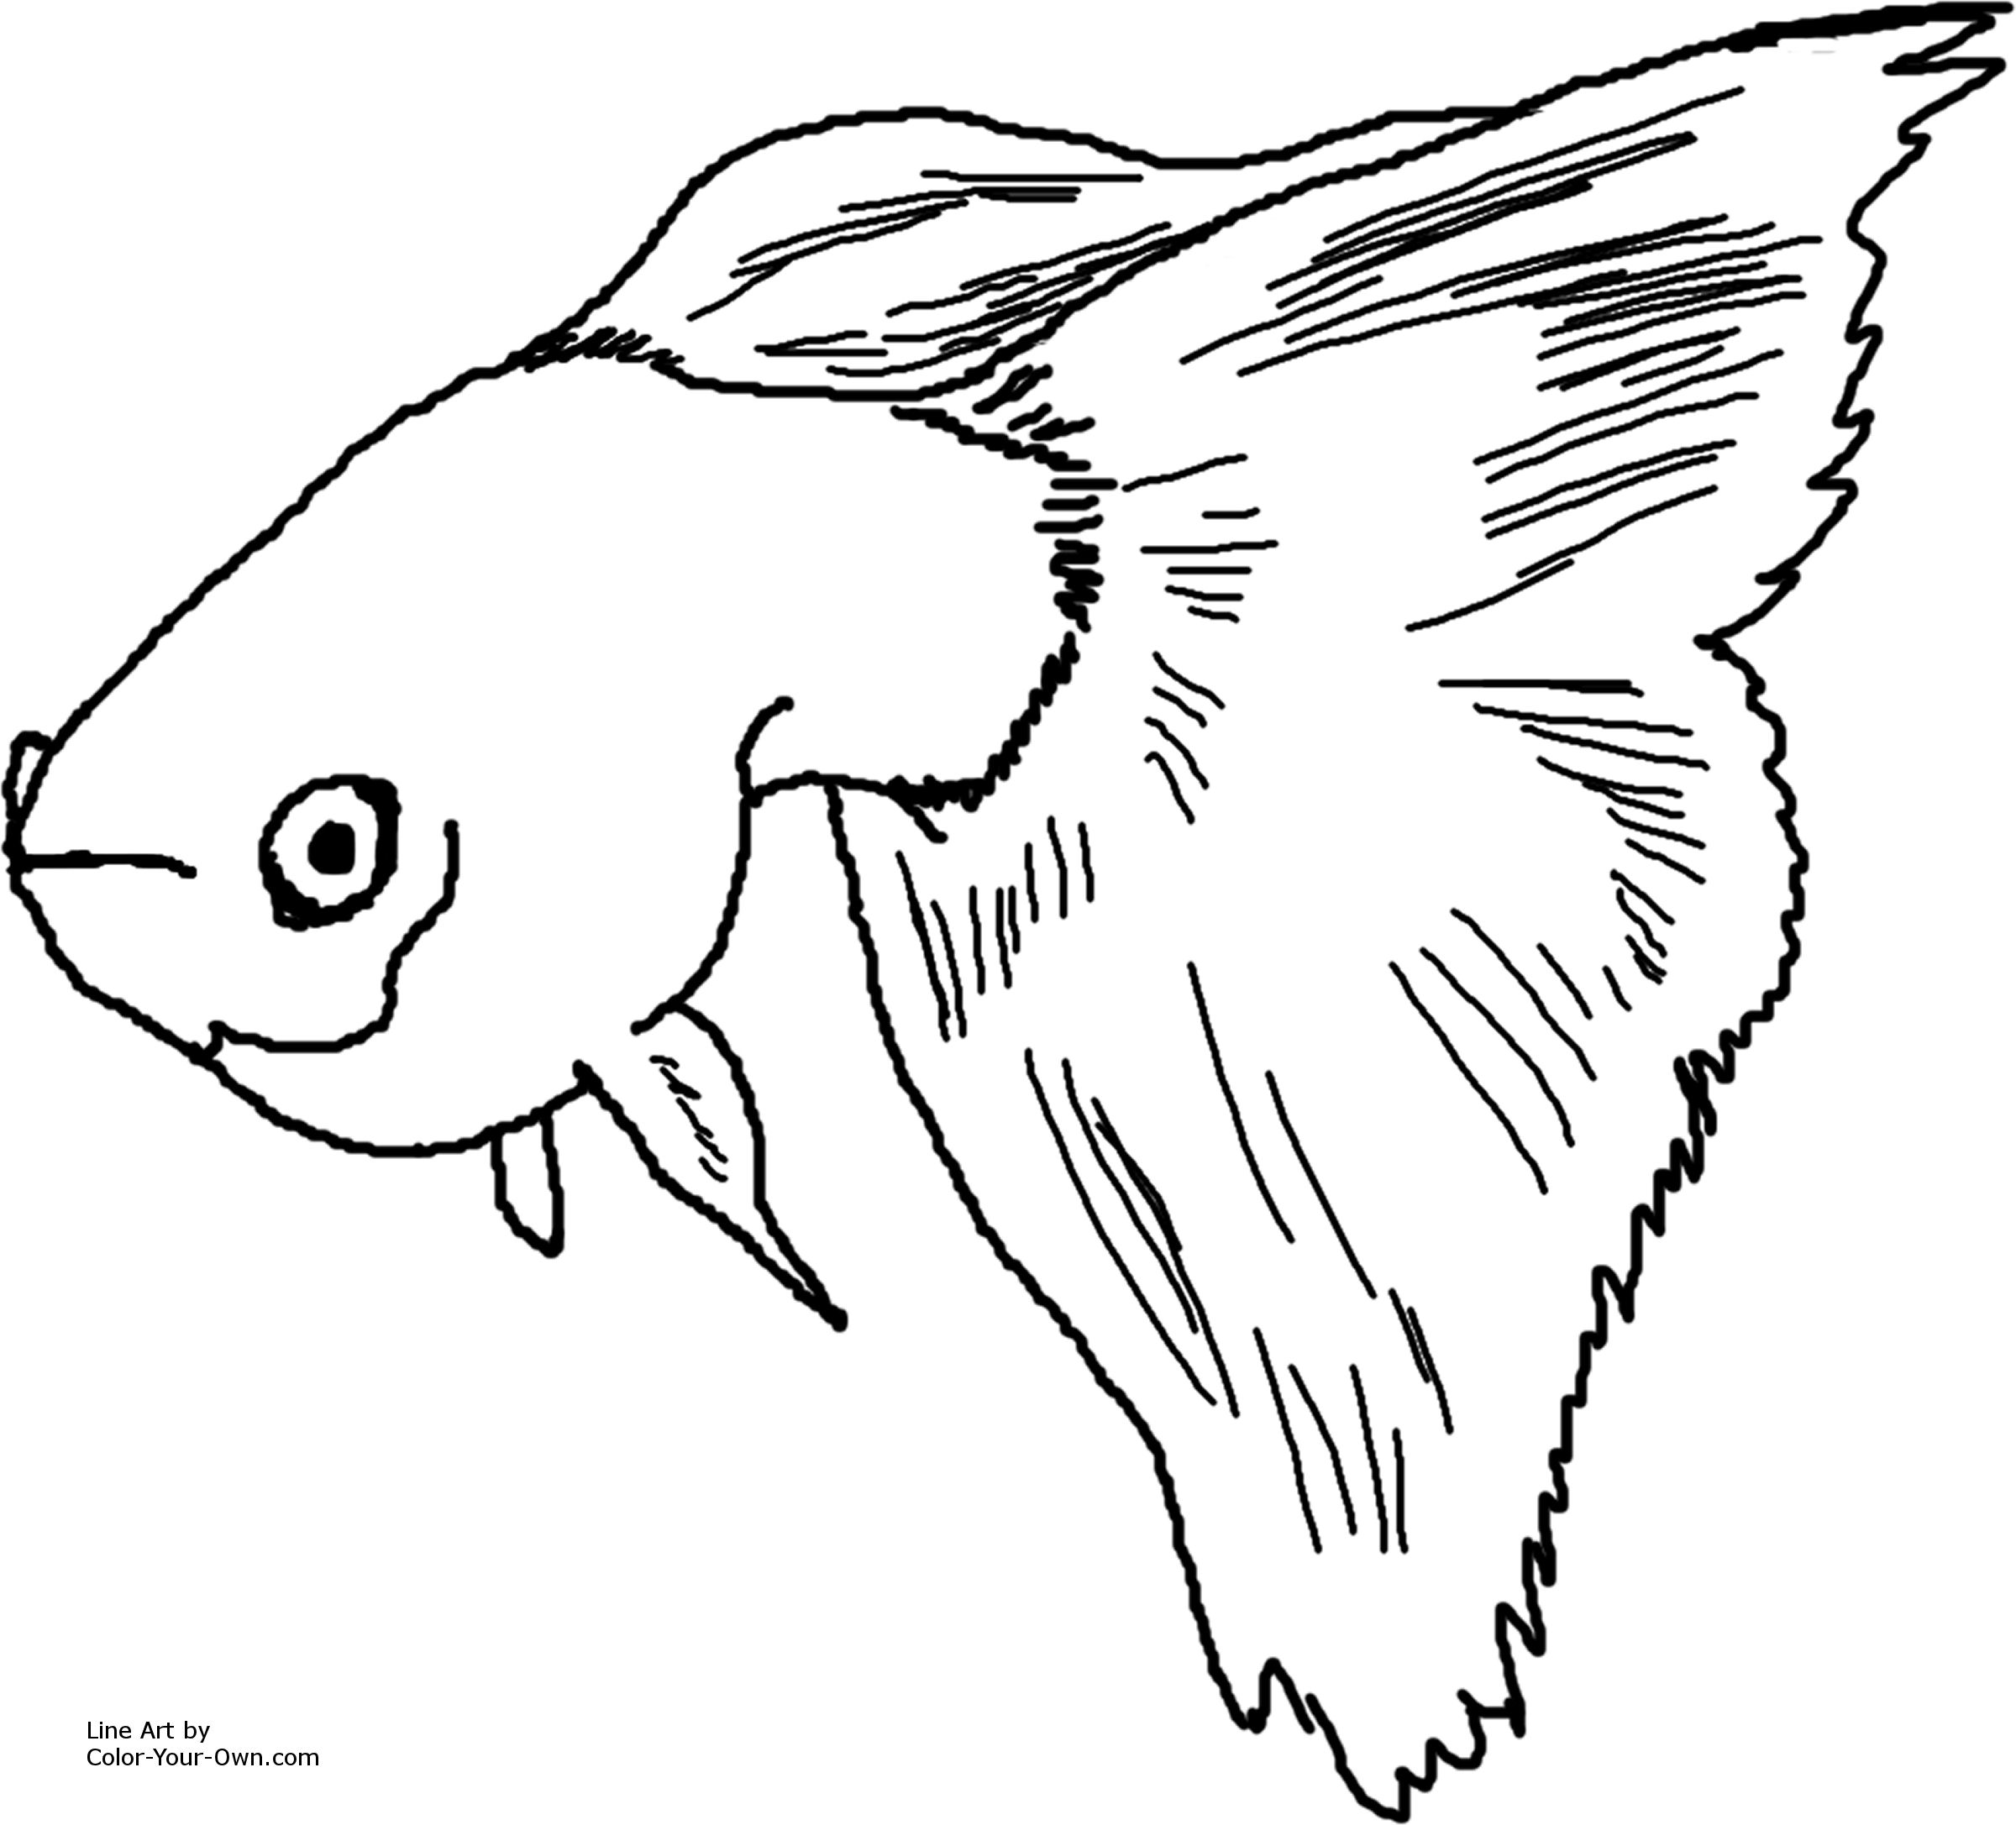 How to draw fish guppies